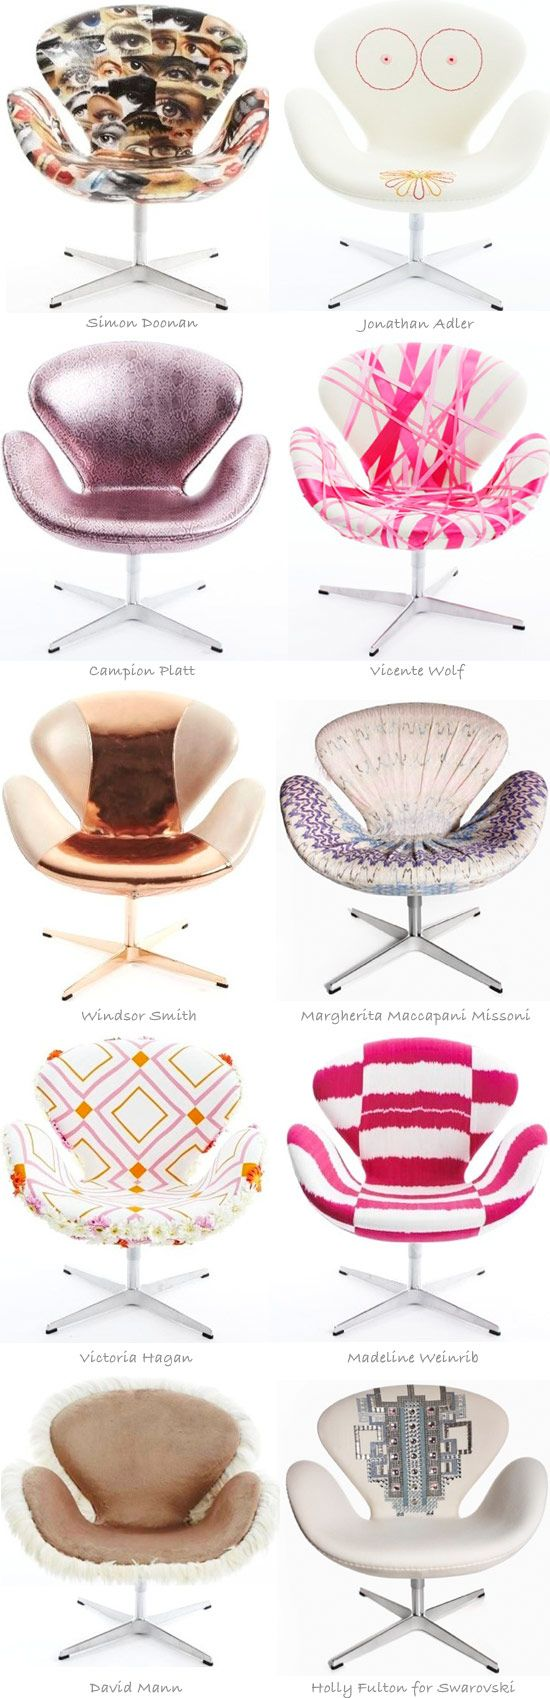 Arne Jacobsen's iconic Swan chair gets redesigned by different designers. Fun!